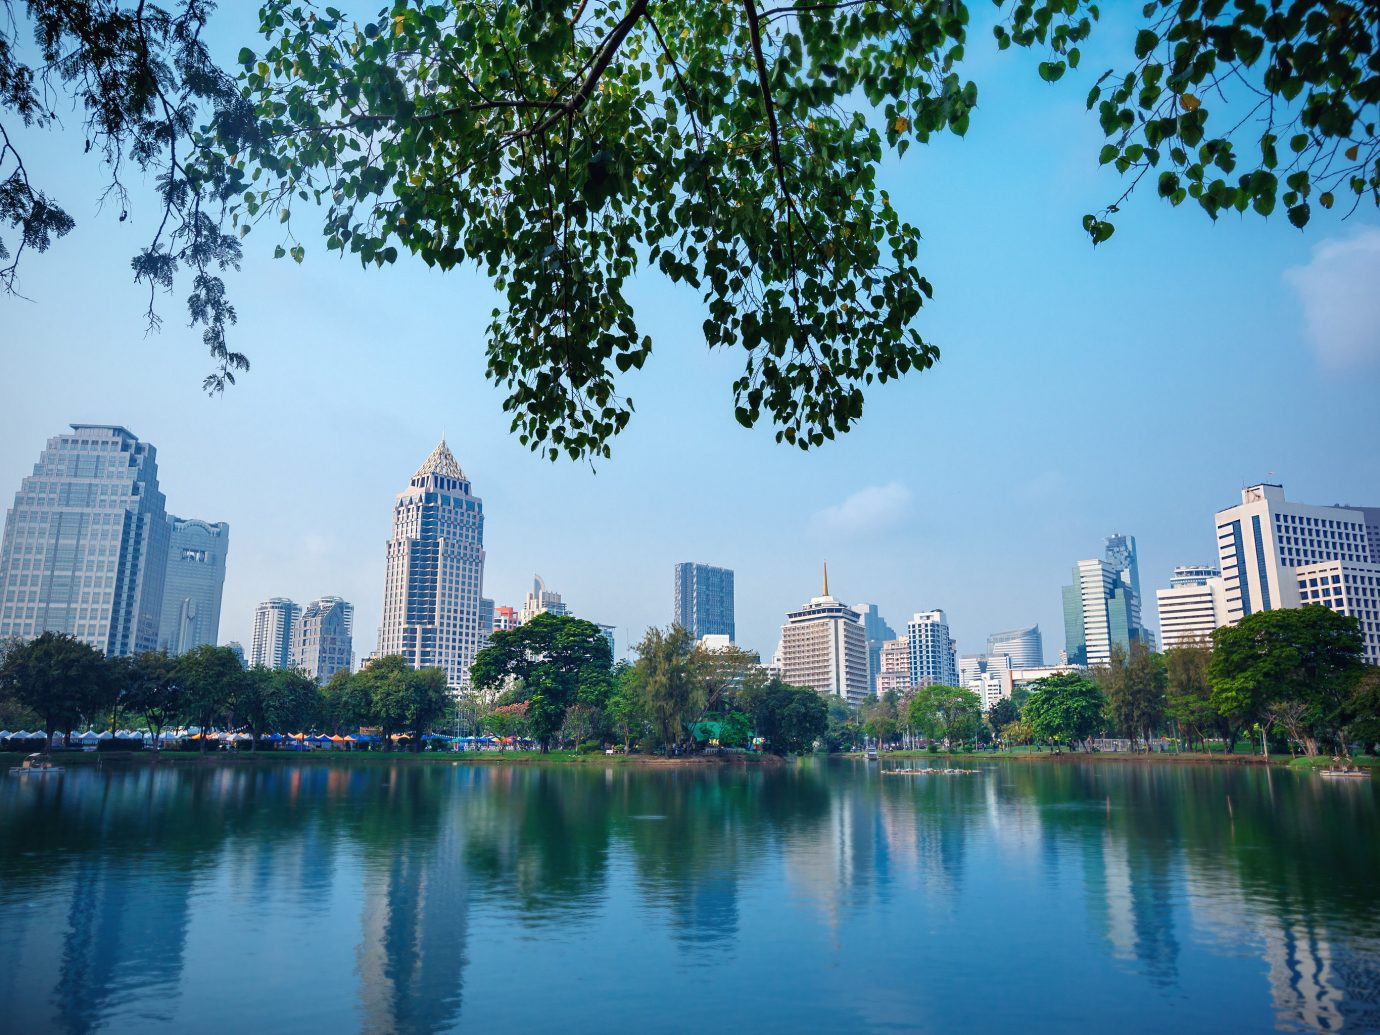 Jetsetter Guides water tree outdoor skyline Lake City River geographical feature human settlement reflection urban area cityscape skyscraper horizon Downtown Nature park pond day